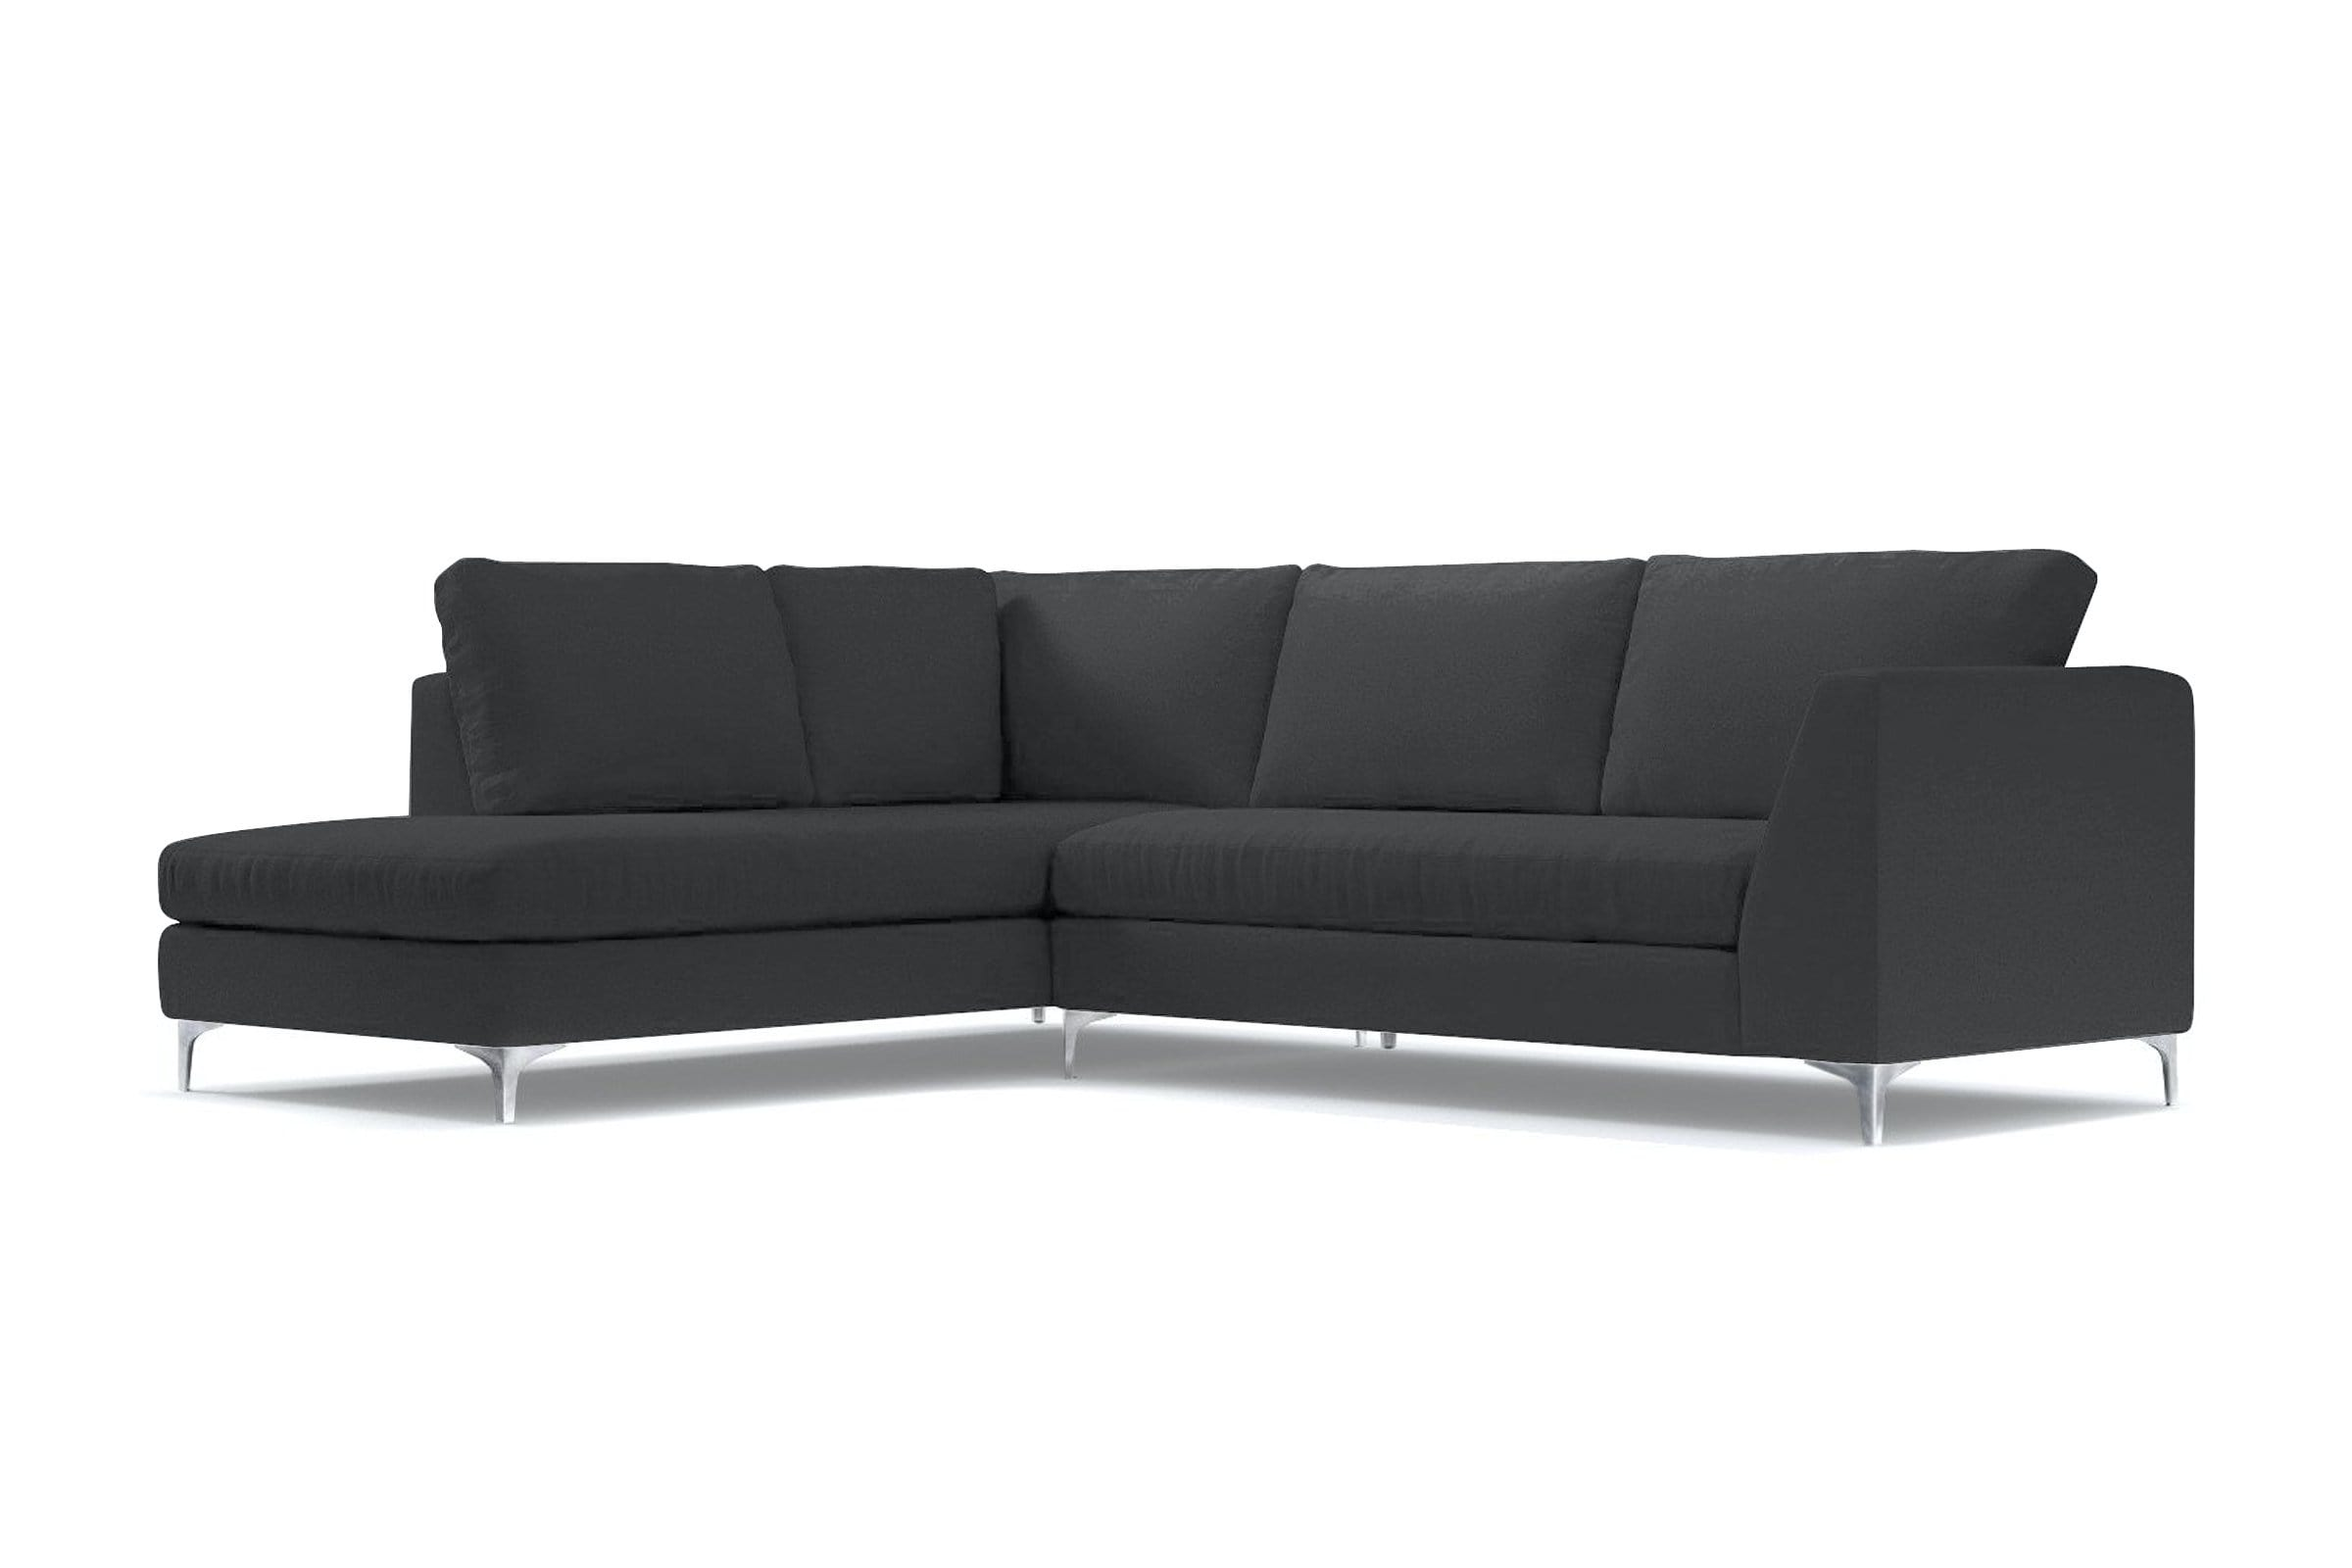 Mulholland 2pc Sectional Sofa - Grey Velvet - Modern Sectional Sofa Made in USA - Sold by Apt2B